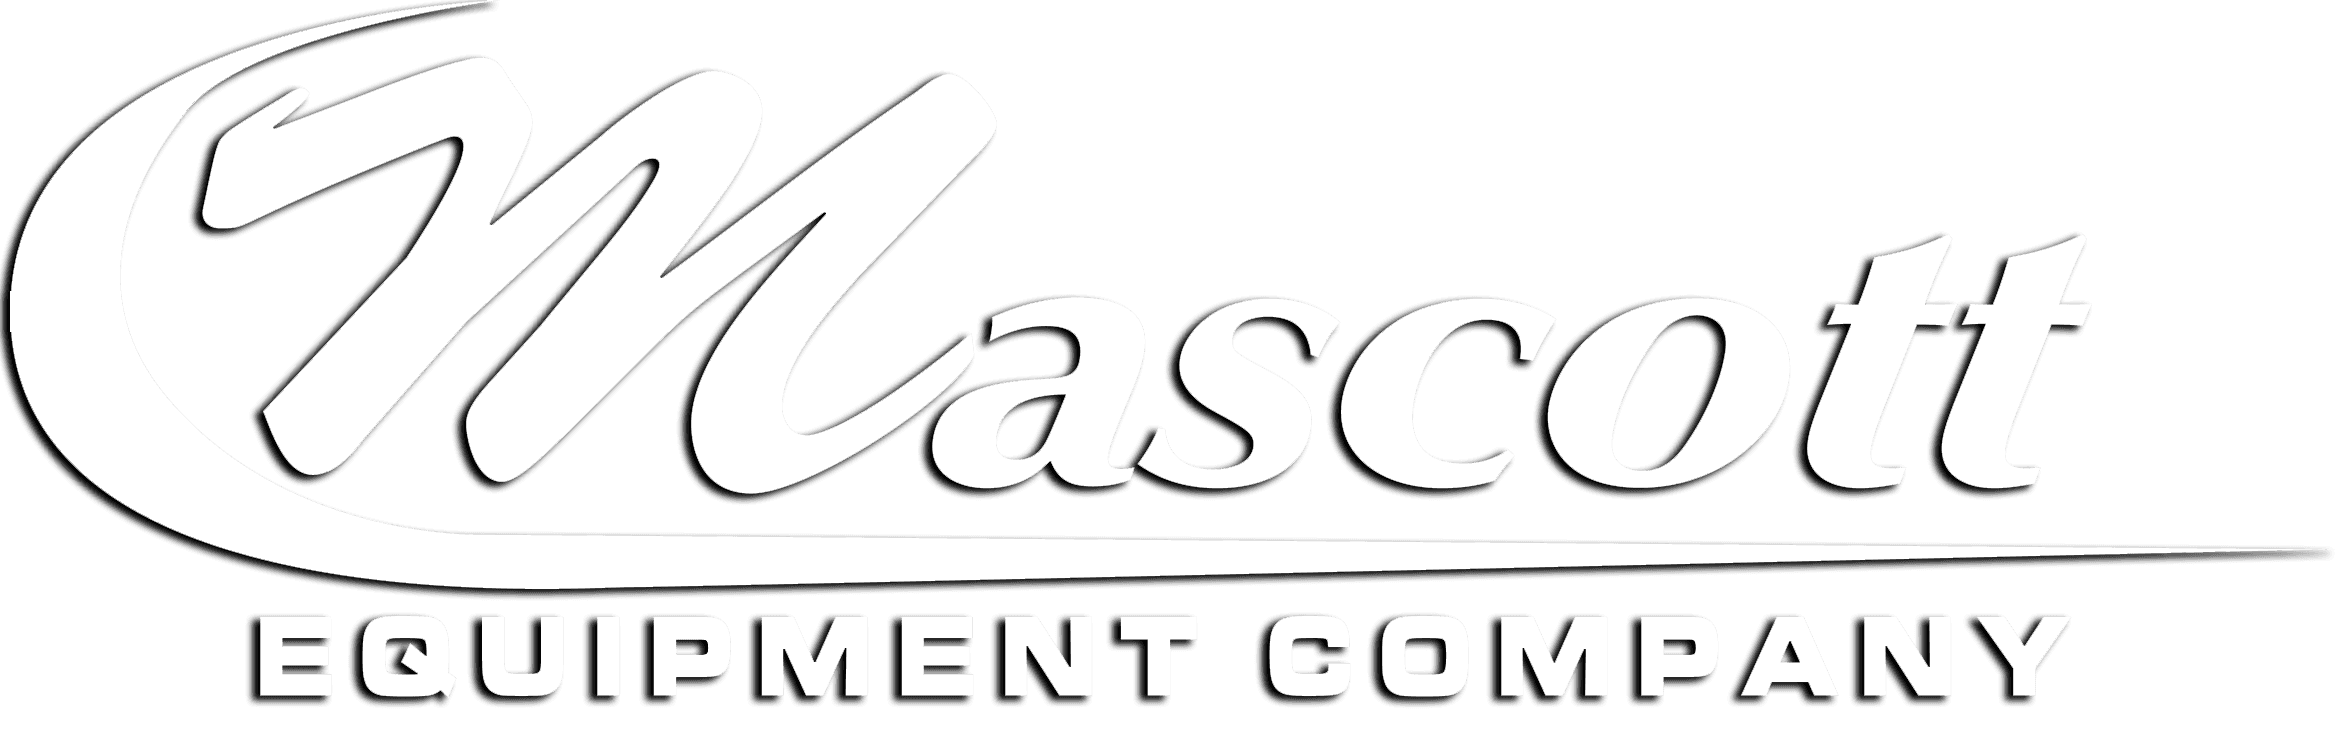 Mascott Equipment Co.